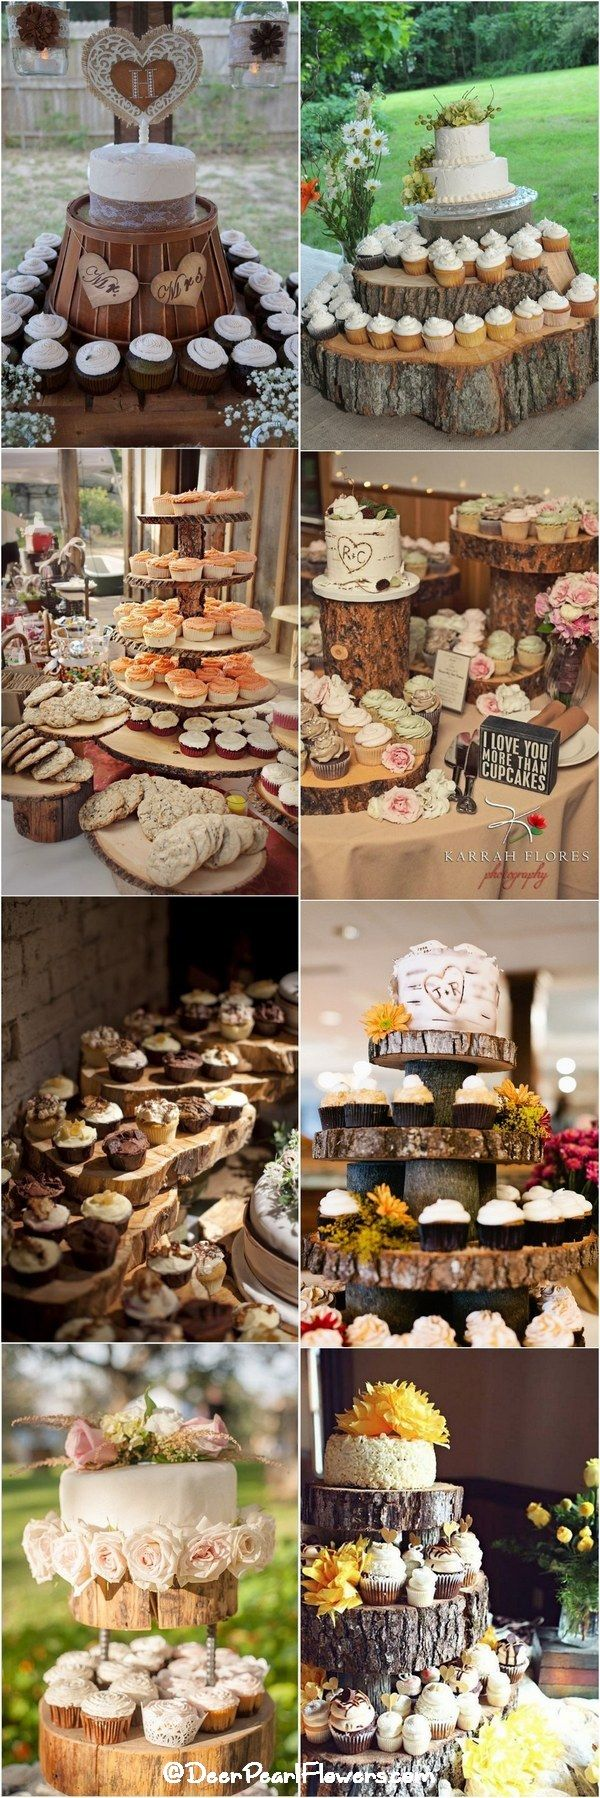 Rustic country wedding cupcakes & stands / http://www.deerpearlflowers.com/rustic-wedding-cupcakes-stands/